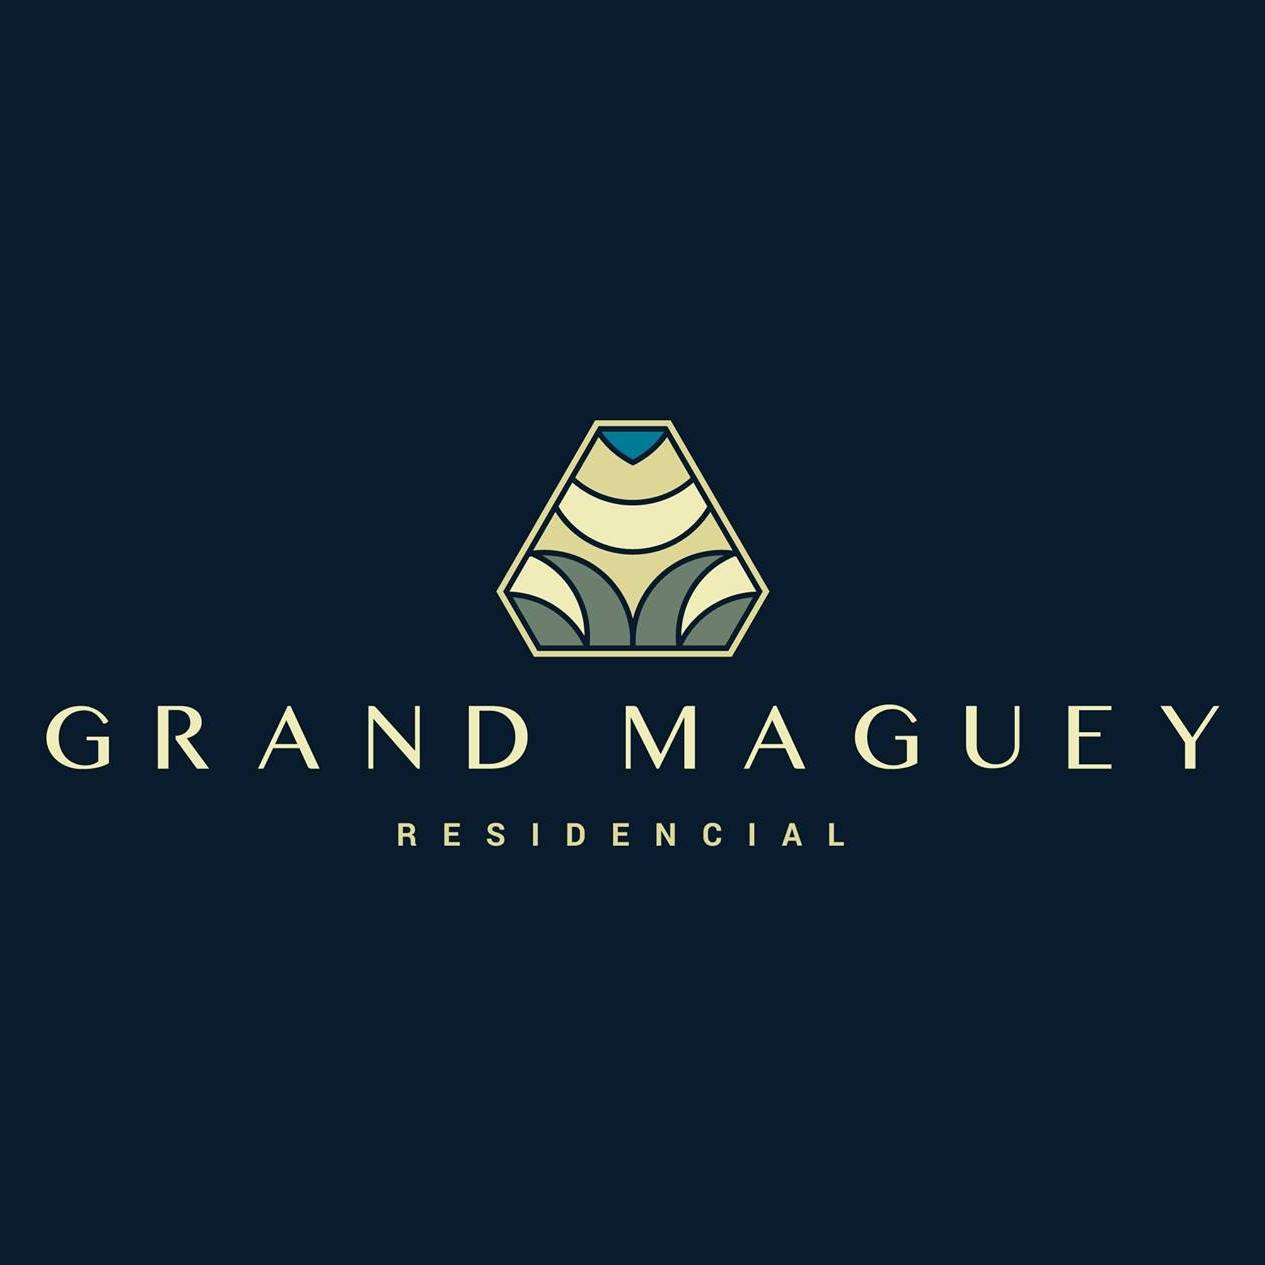 Grand Maguey Residencial